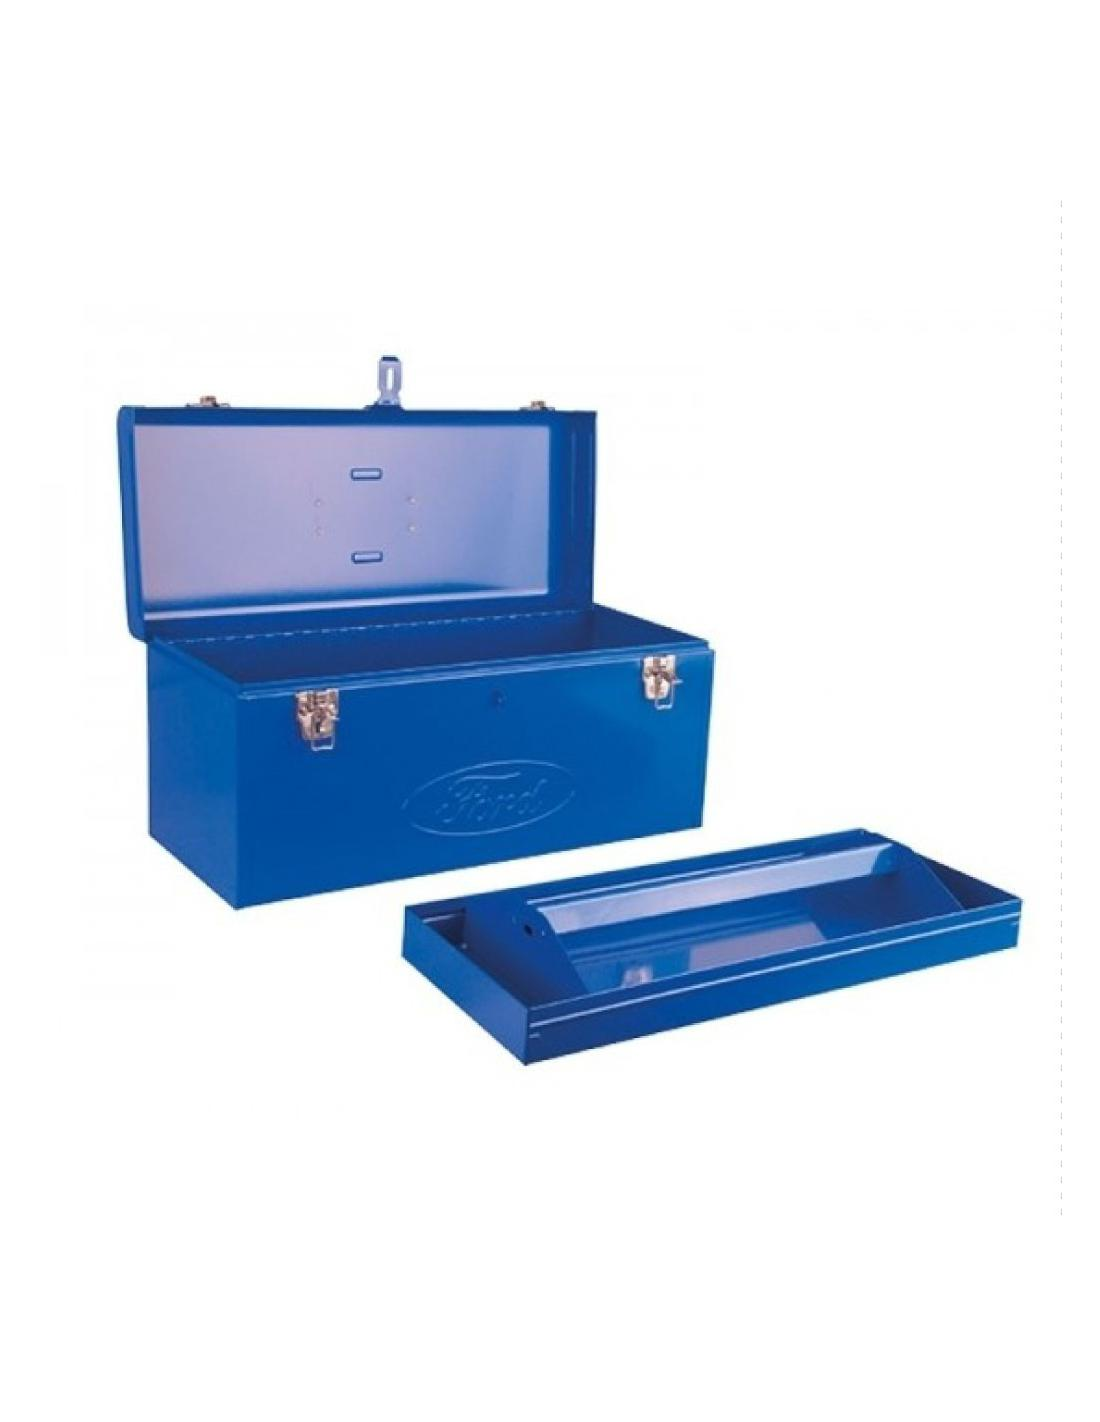 BOITE A OUTILS FORD - 1